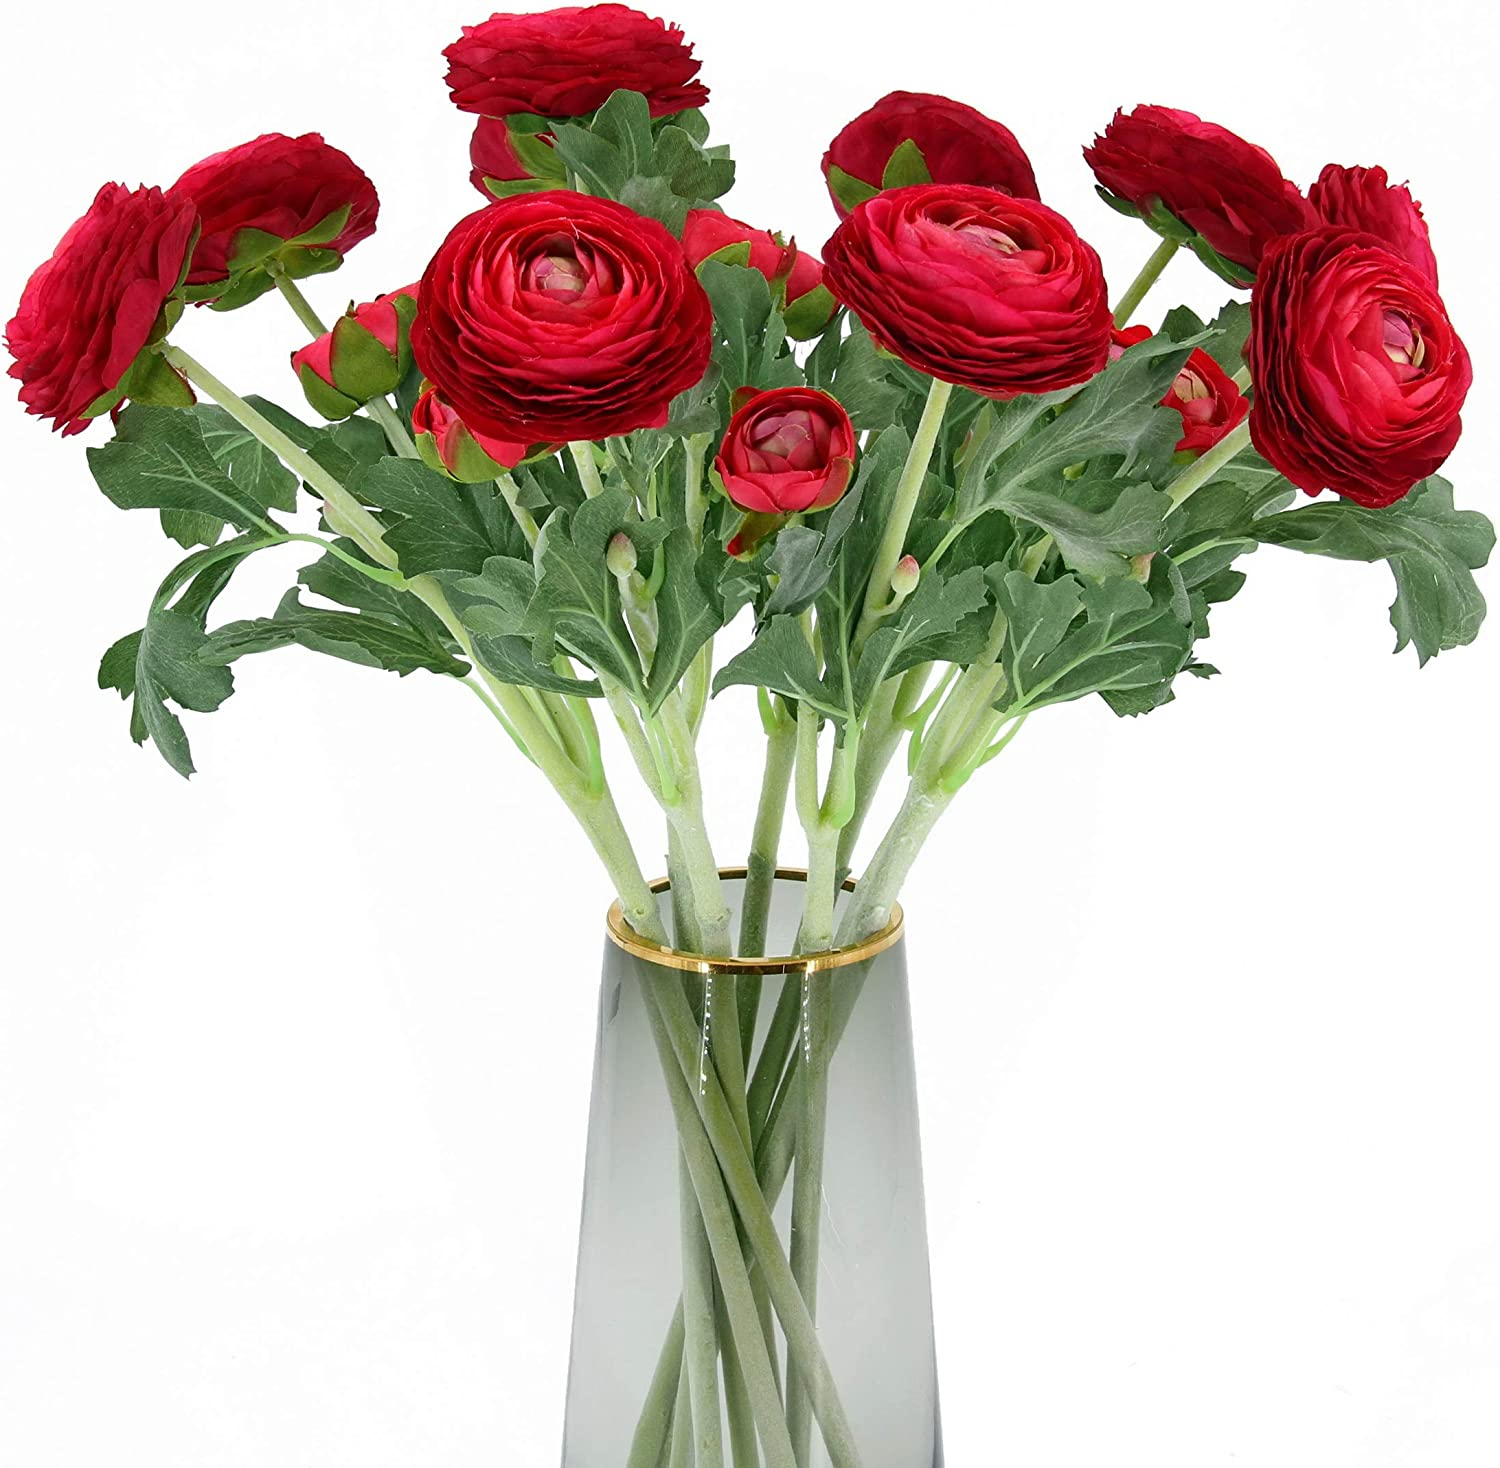 Artificial Ranunculus Flowers with Real Touch Stem, Silk Ranunculus Flowers(10 Pack) (Red)